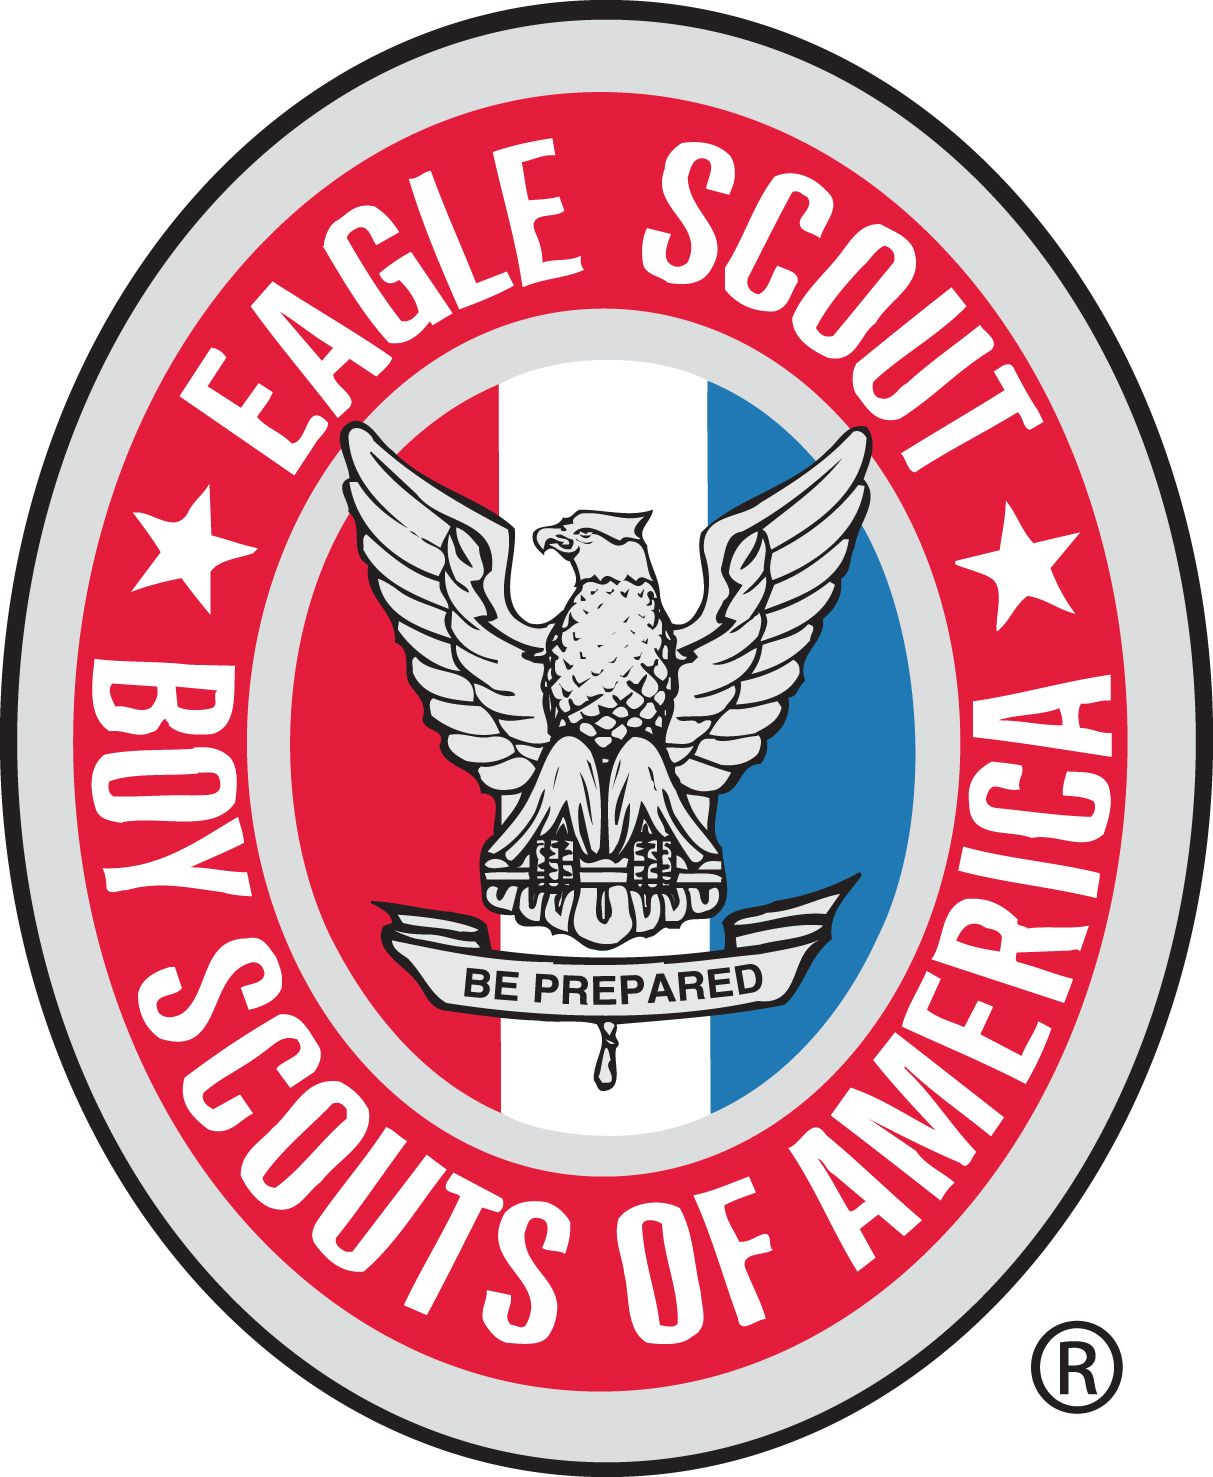 hight resolution of eagle scout badge boy scout troop scout badges scout mom cub scouts